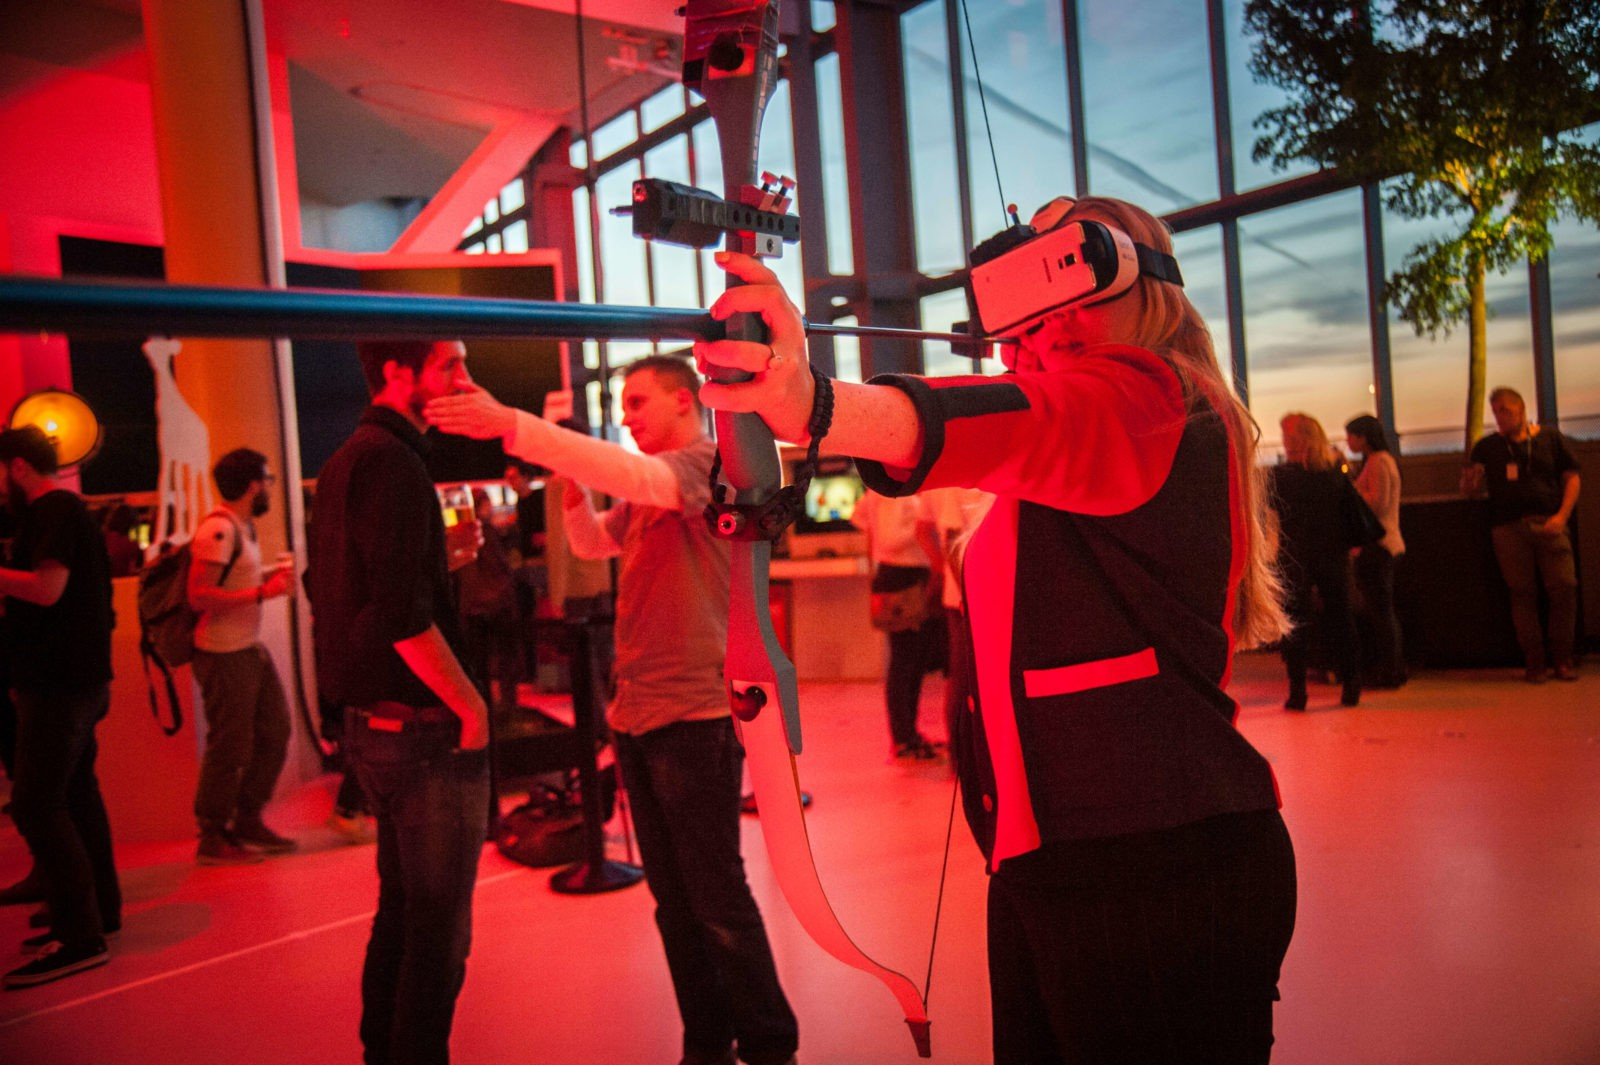 Playing VR games at INDIGO 2015